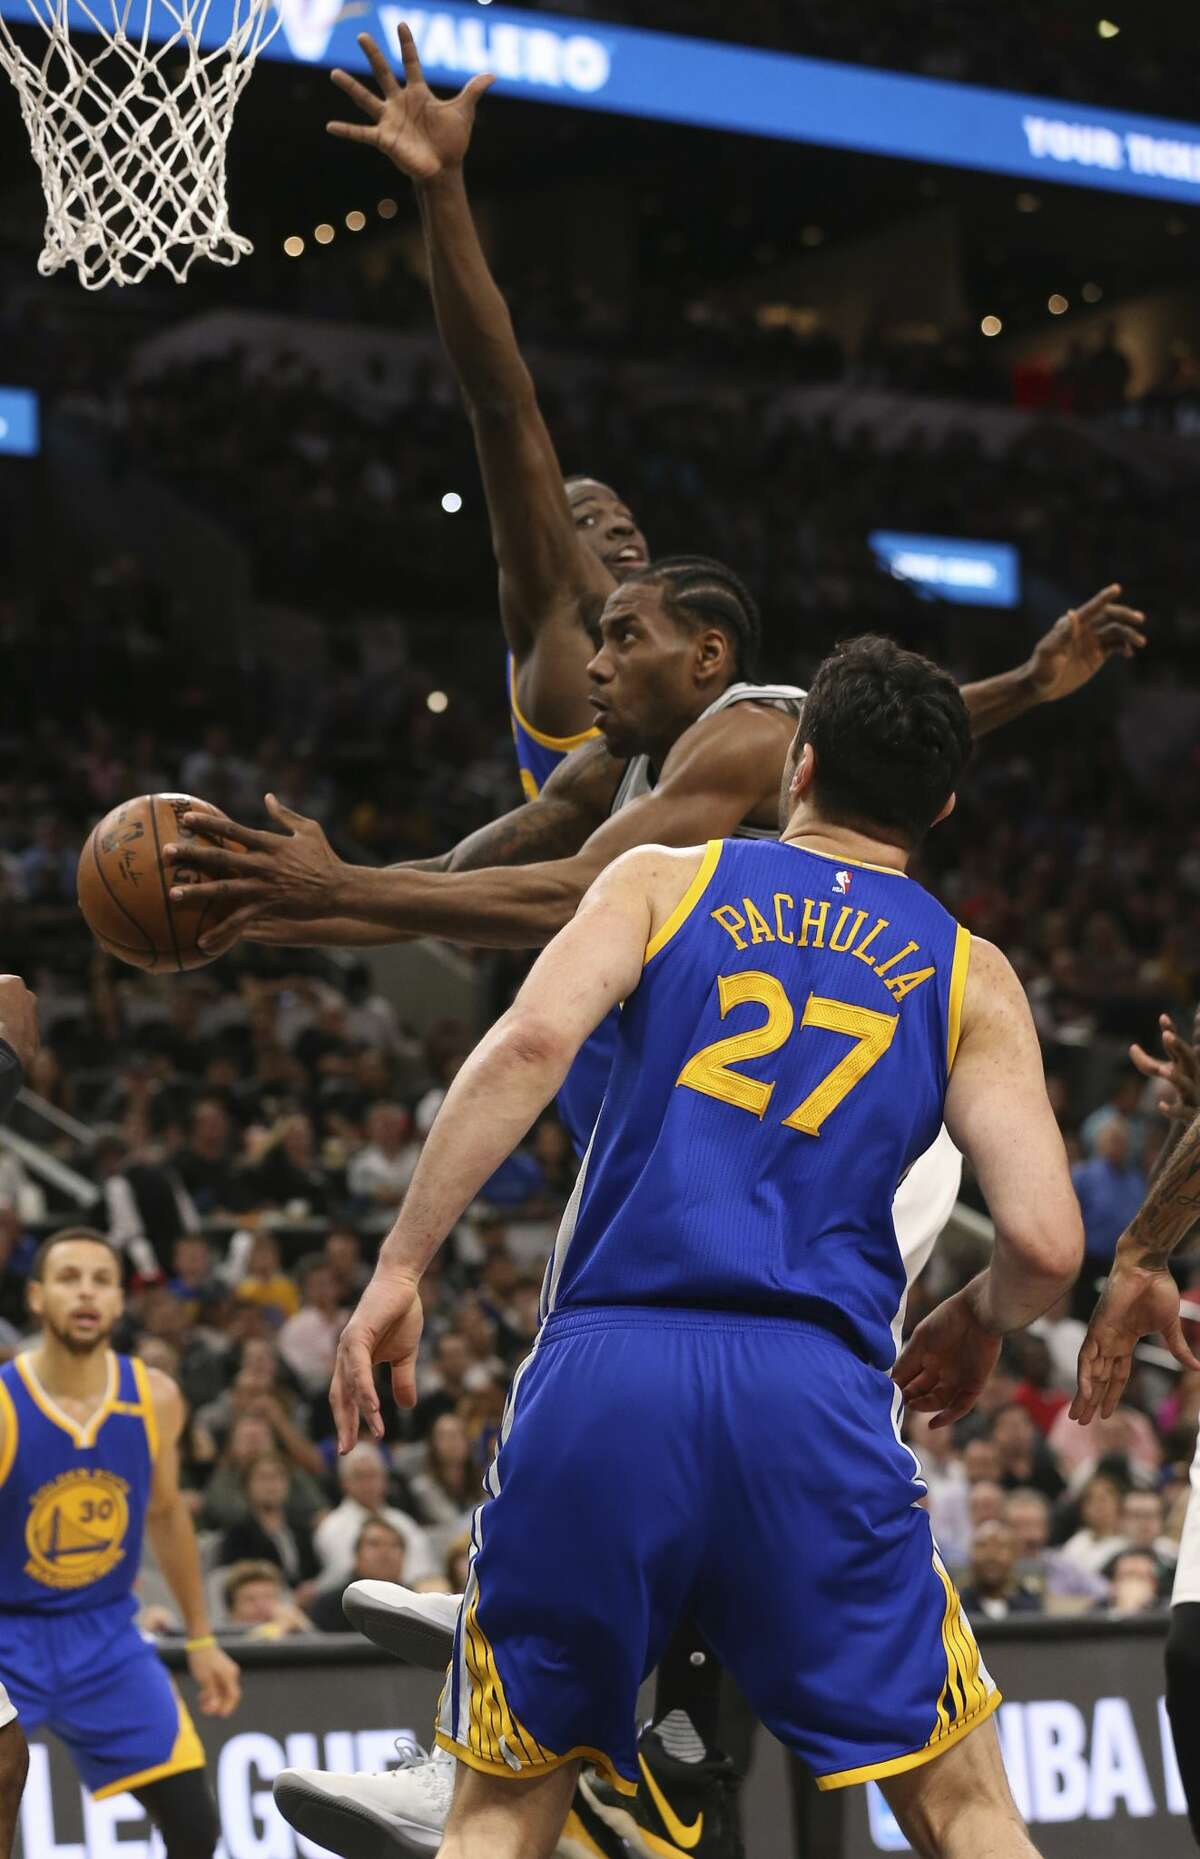 San Antonio Spurs?' Kawhi Leonard drives between Golden State Warriors' Draymond Green and Zaza Pachulia during the first half at the AT&T Center, Wednesday, March 29, 2017.